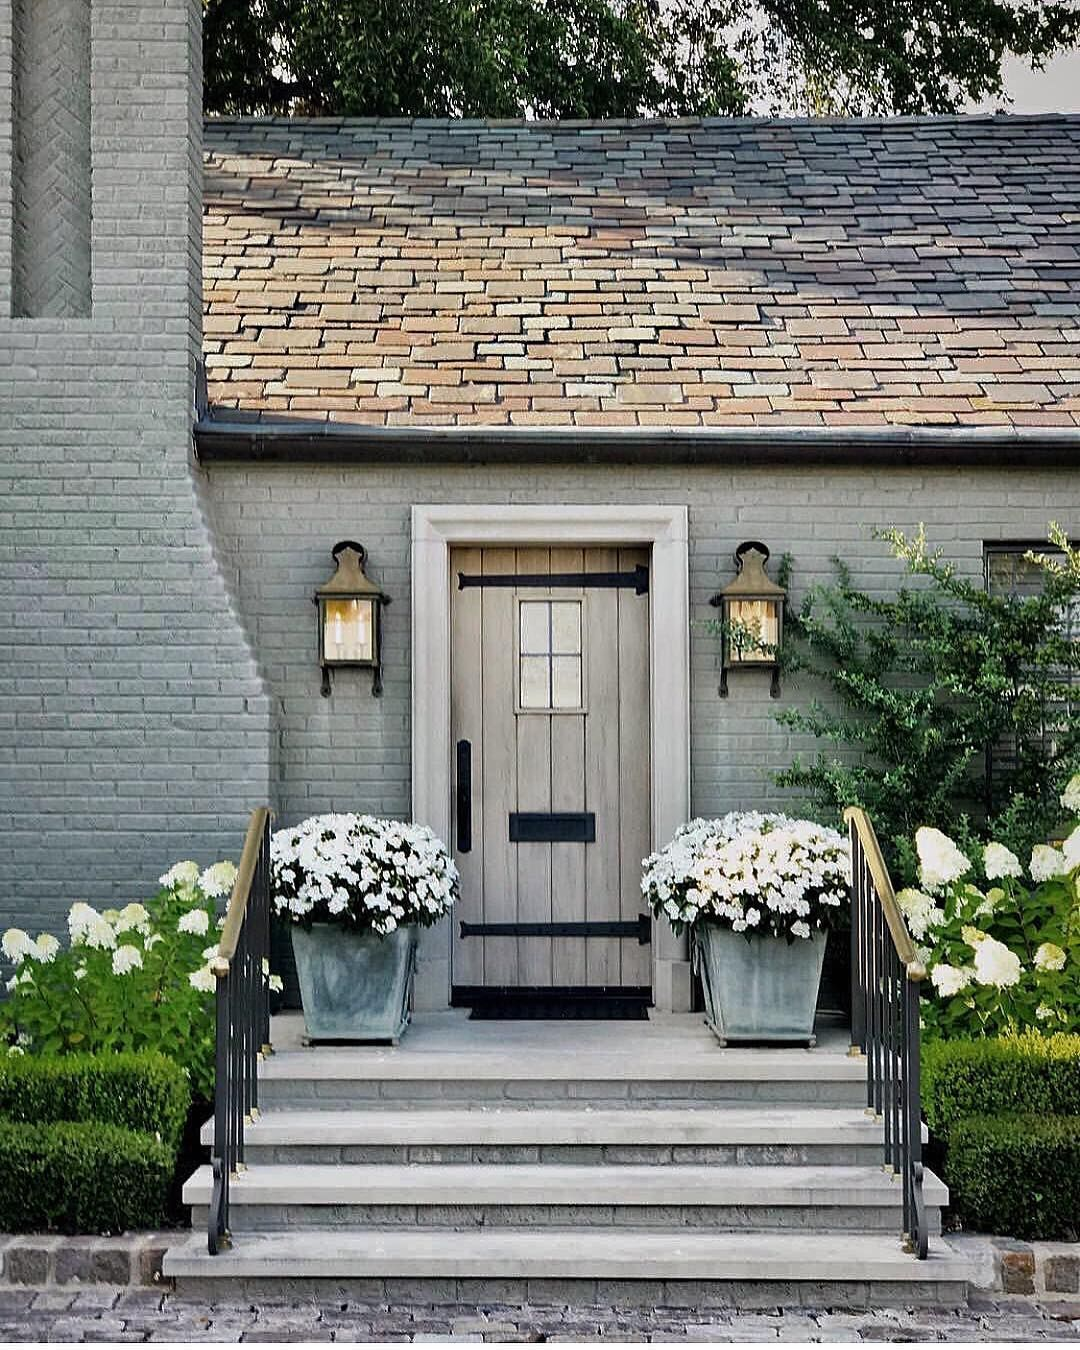 16 Enchanting Modern Entrance Designs That Boost The Appeal Of The Home: 17 Most Shocking Front Door Flower Pots Ideas (Peaceful And Lovely!)